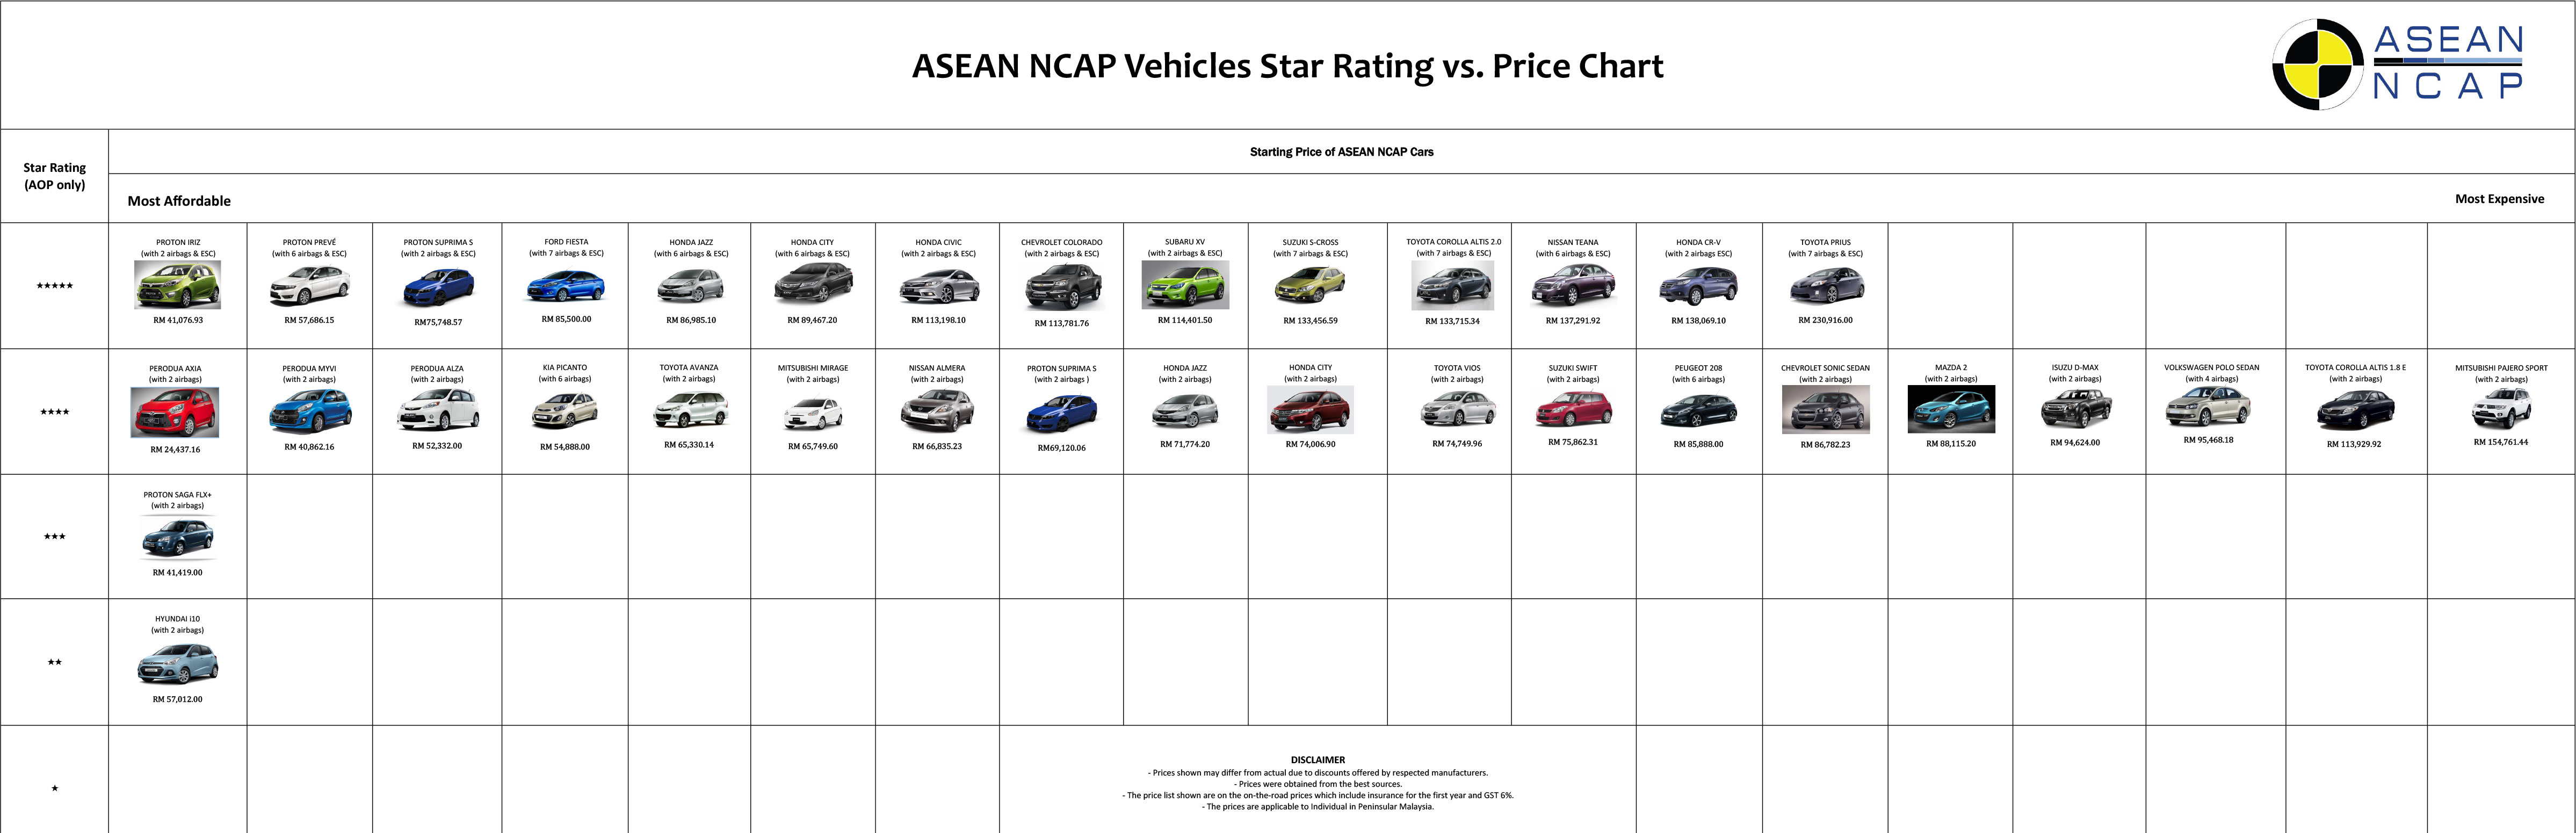 ASEAN NCAP releases star rating vs price chart – Proton ...